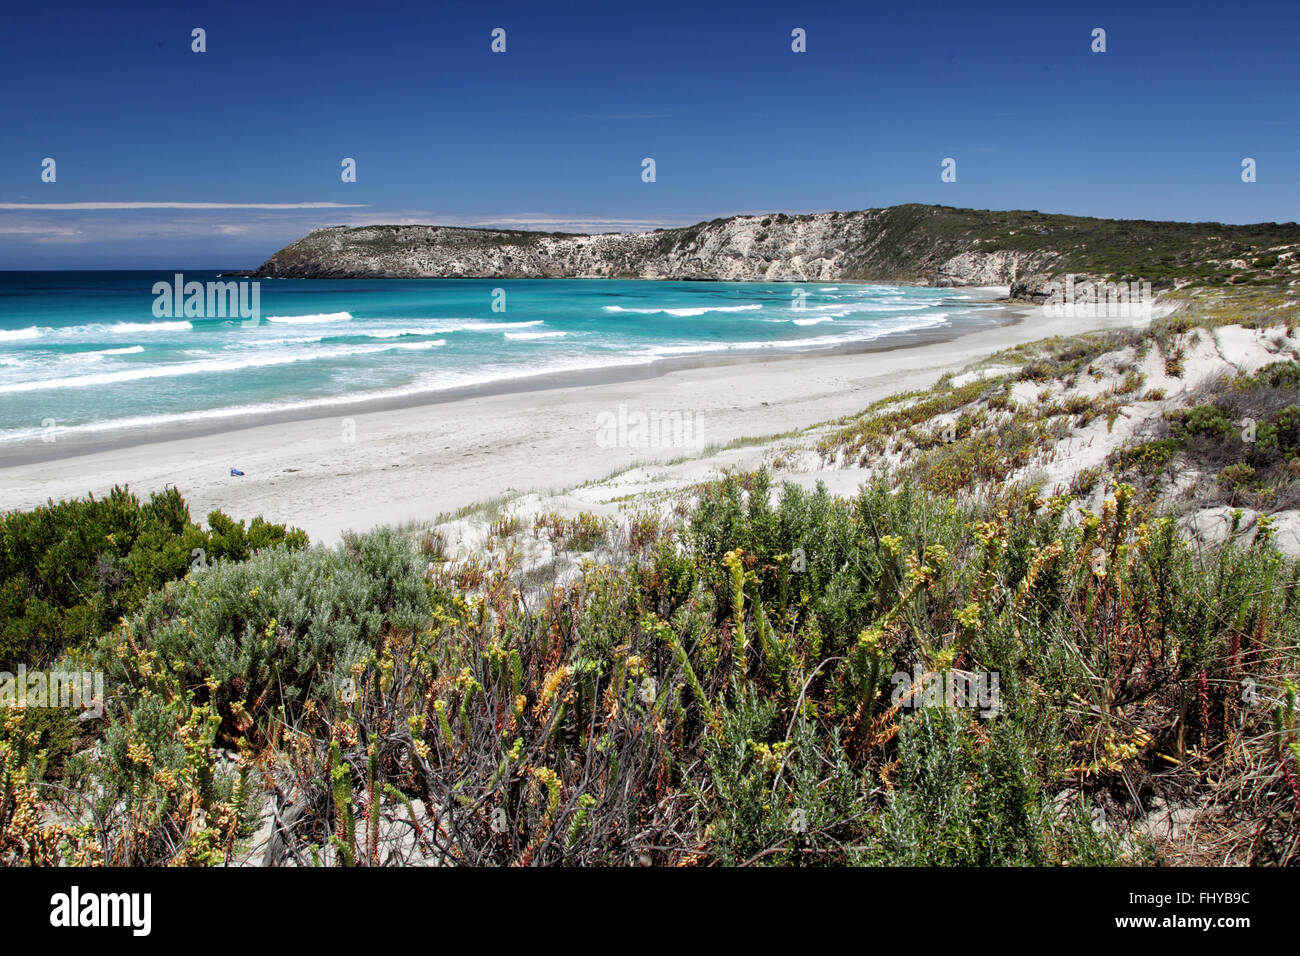 Coastal landscape in Pennington Bay on Kangaroo Island, South Australia, Australia. Stock Photo